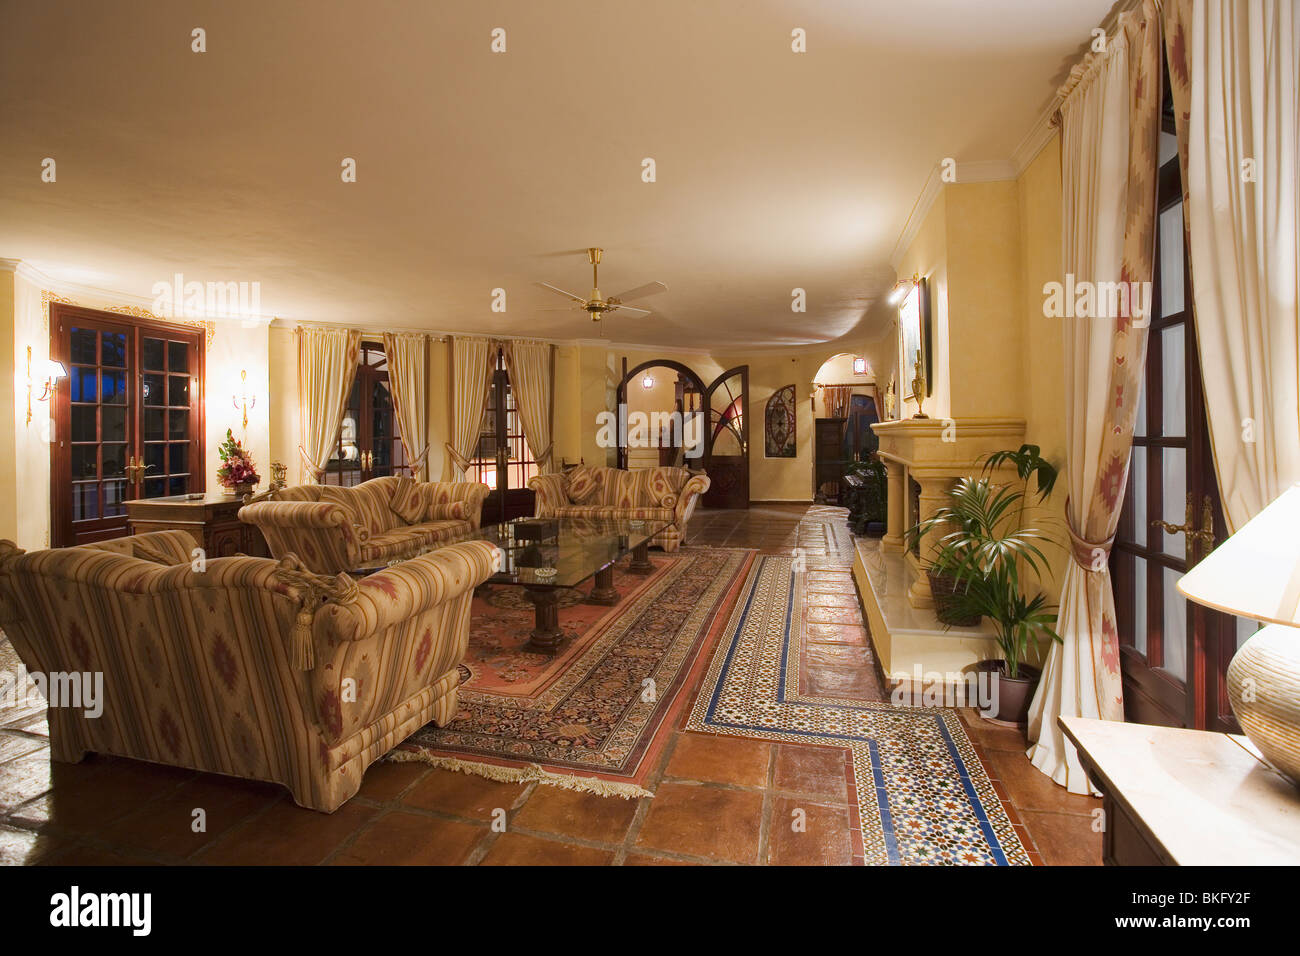 Terracotta and moroccan floor tiles on floor of large spanish country stock photo royalty free for Terracotta living room ideas